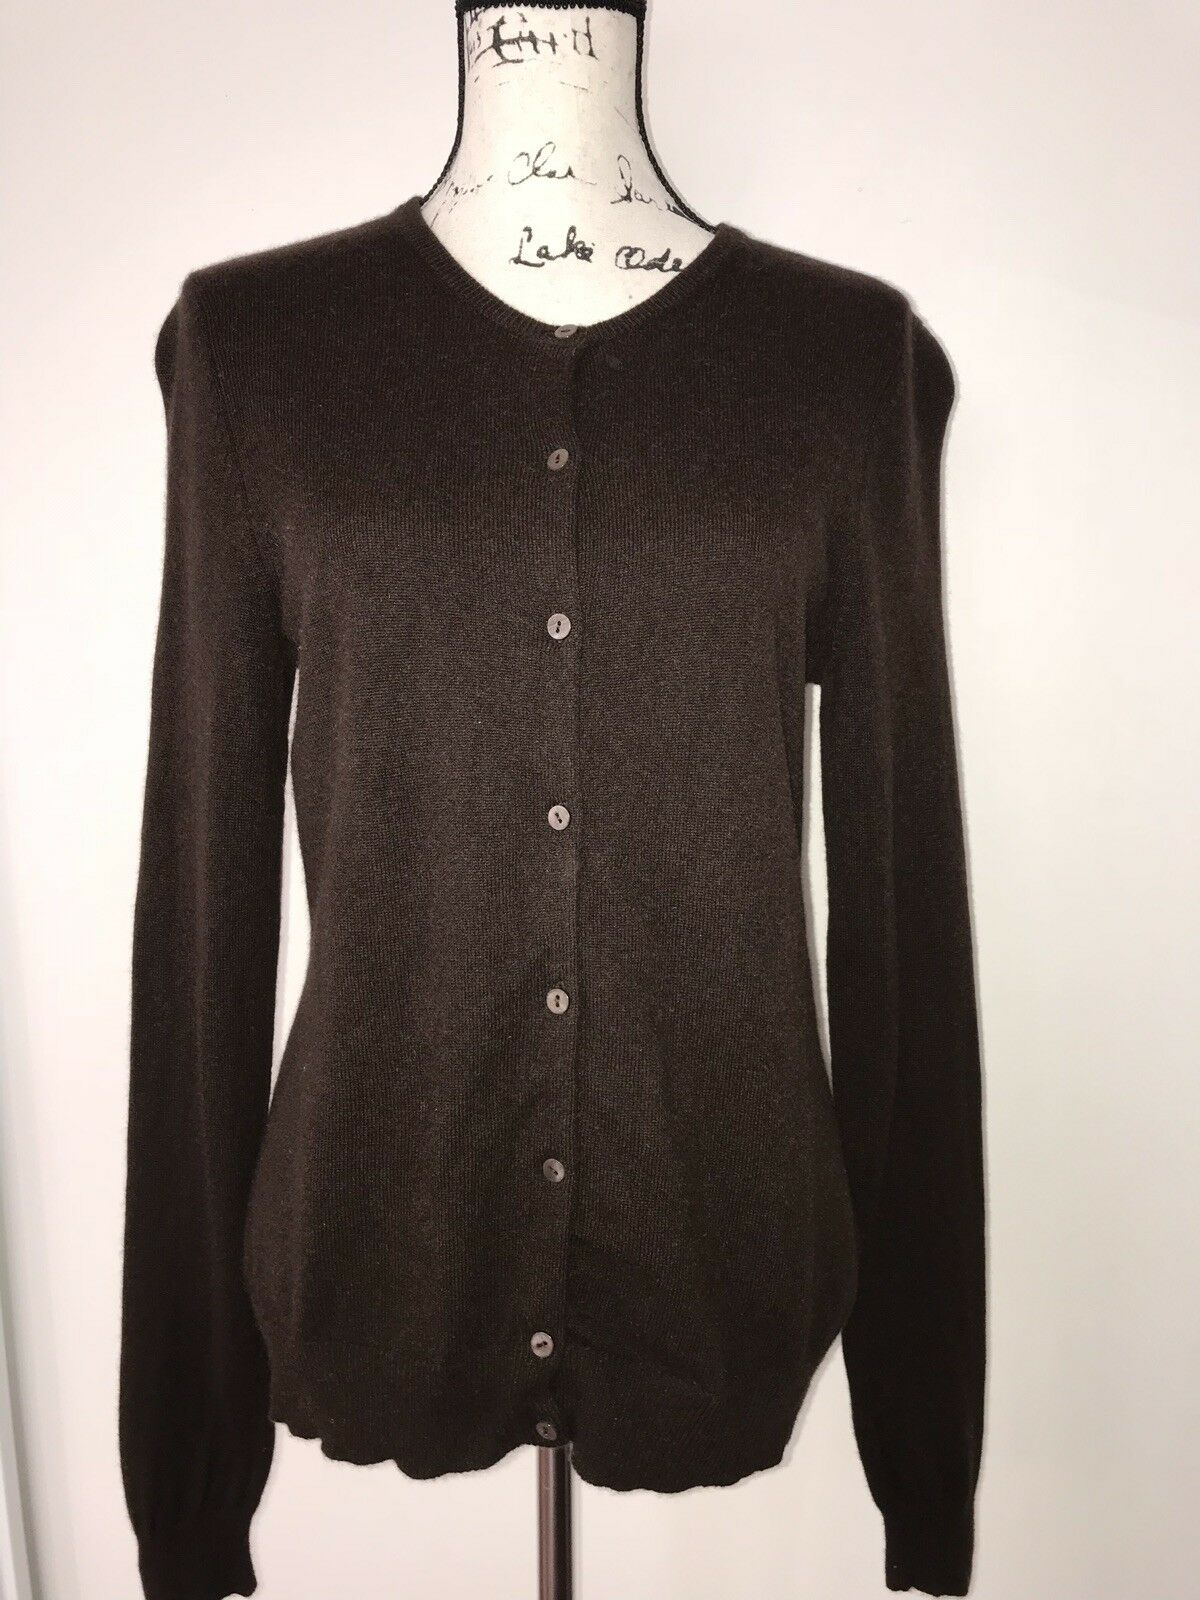 Bloomingdale's Sutton Studio 100% Cashmere Brown Sweater Button Down Cardigan L